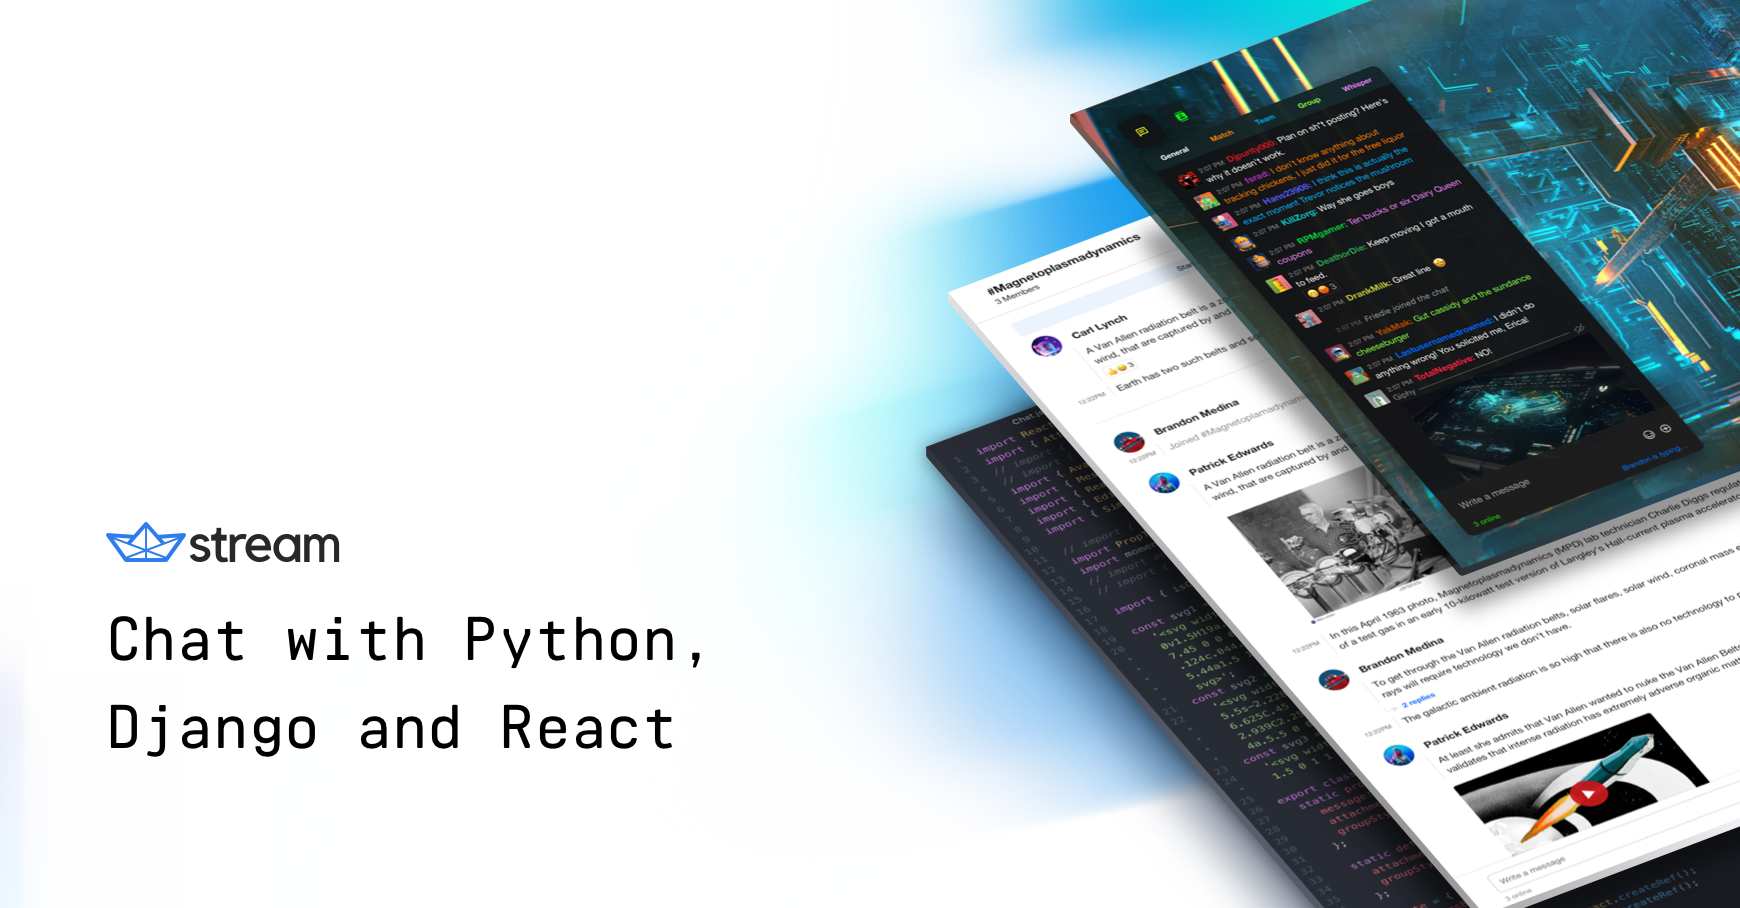 Tutorial: Build Chat with Python - The Stream Blog